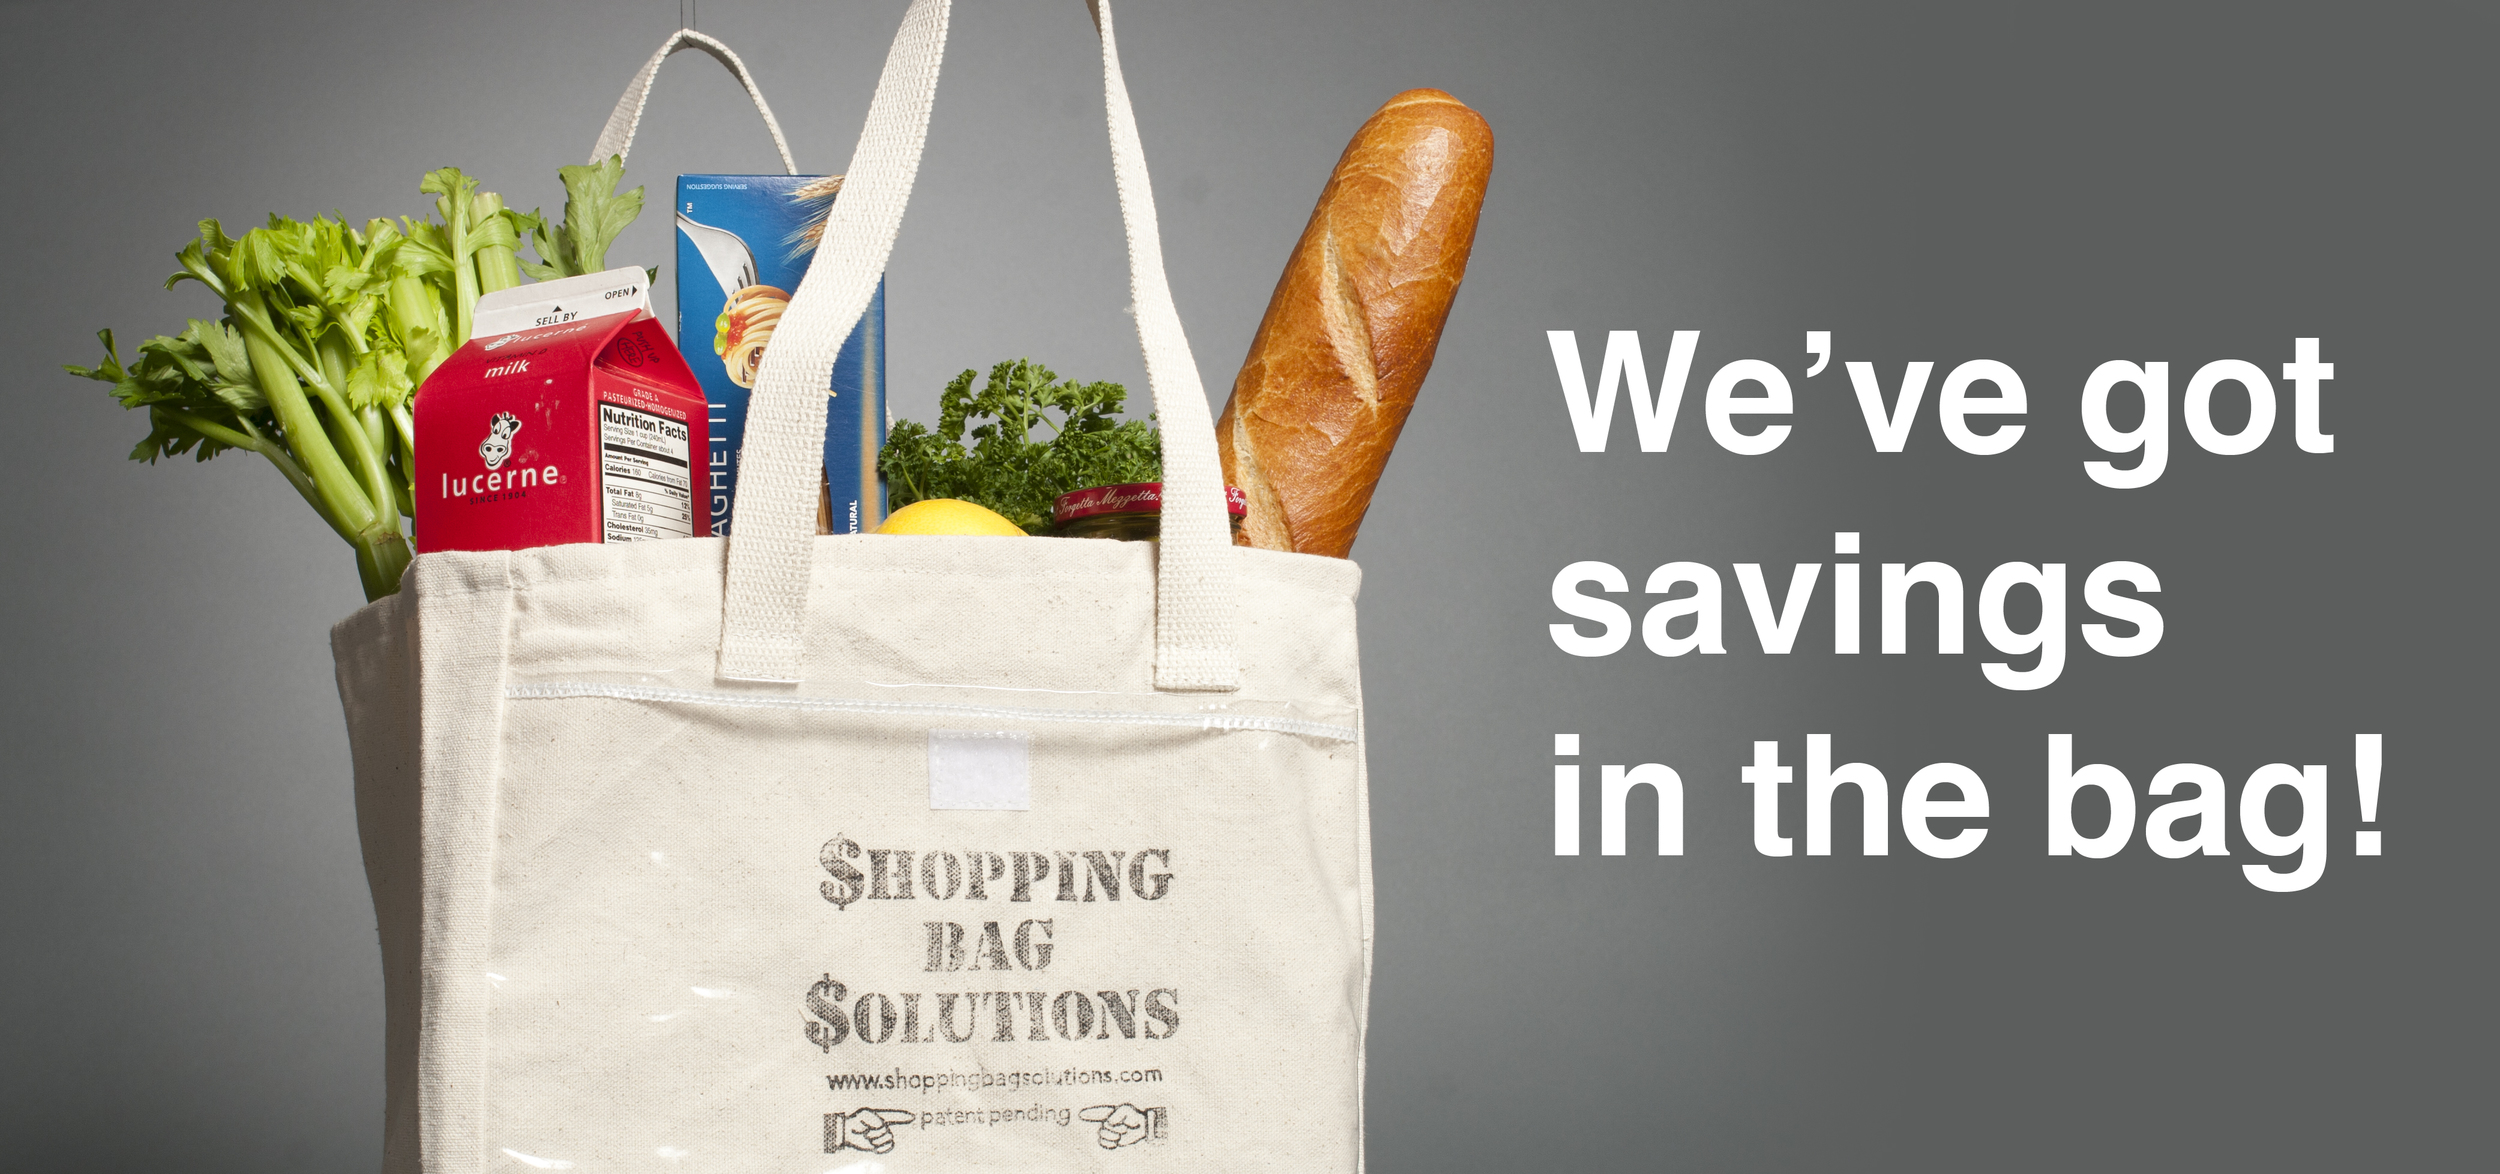 Welcome to Shopping Bag Solutions